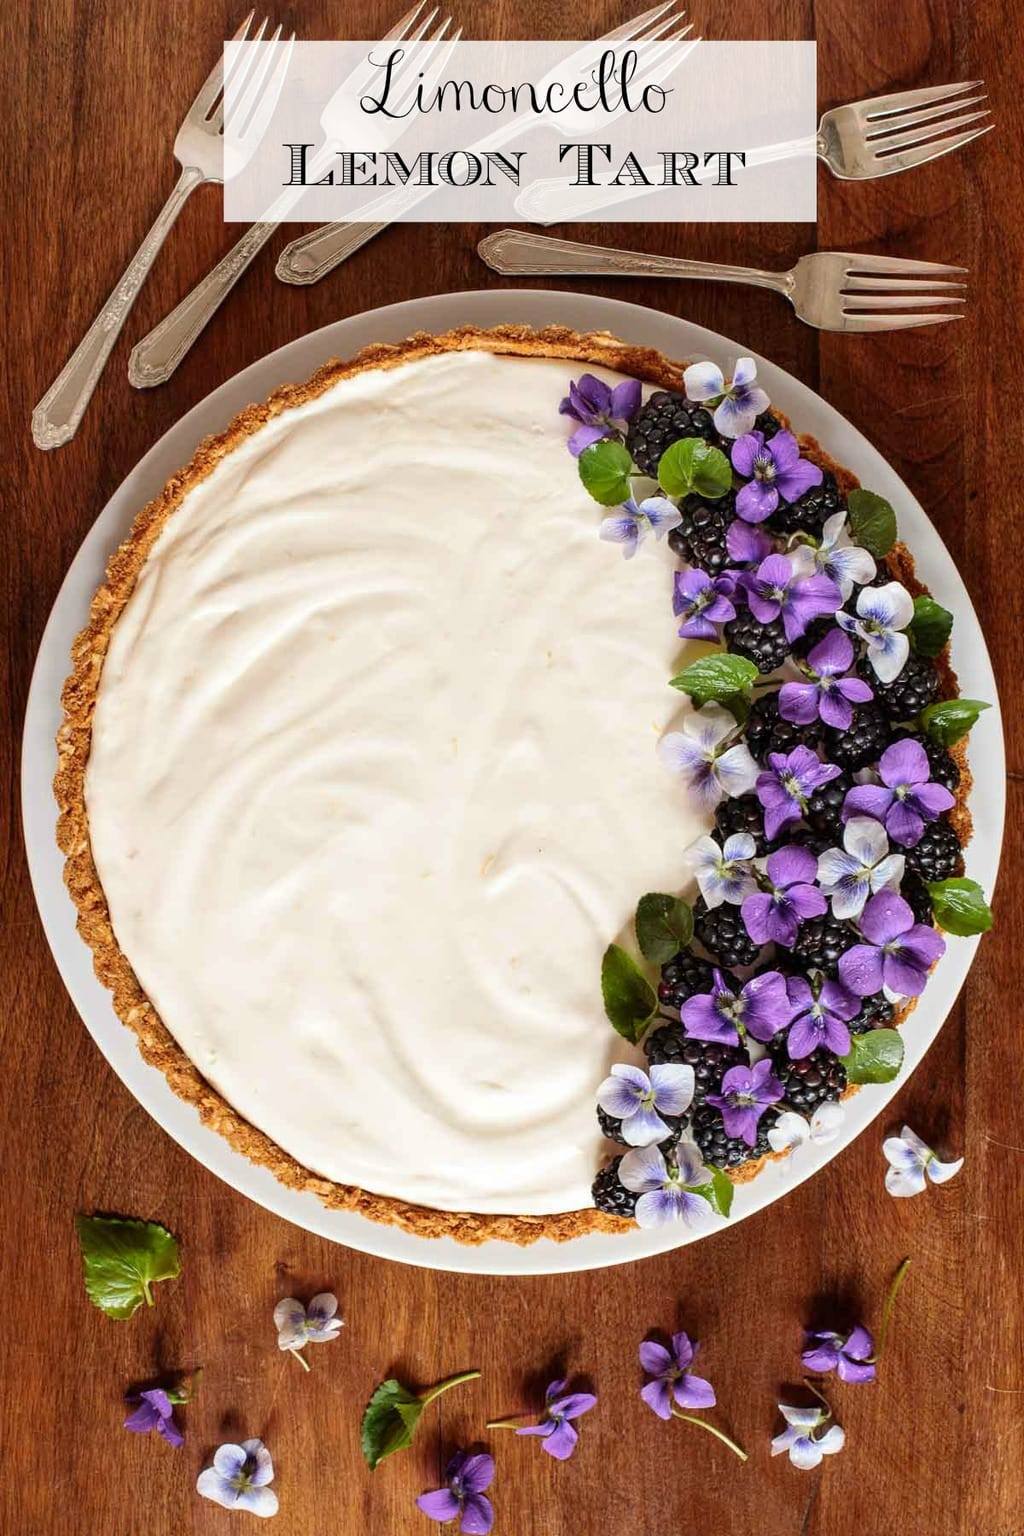 Limoncello Lemon Tart